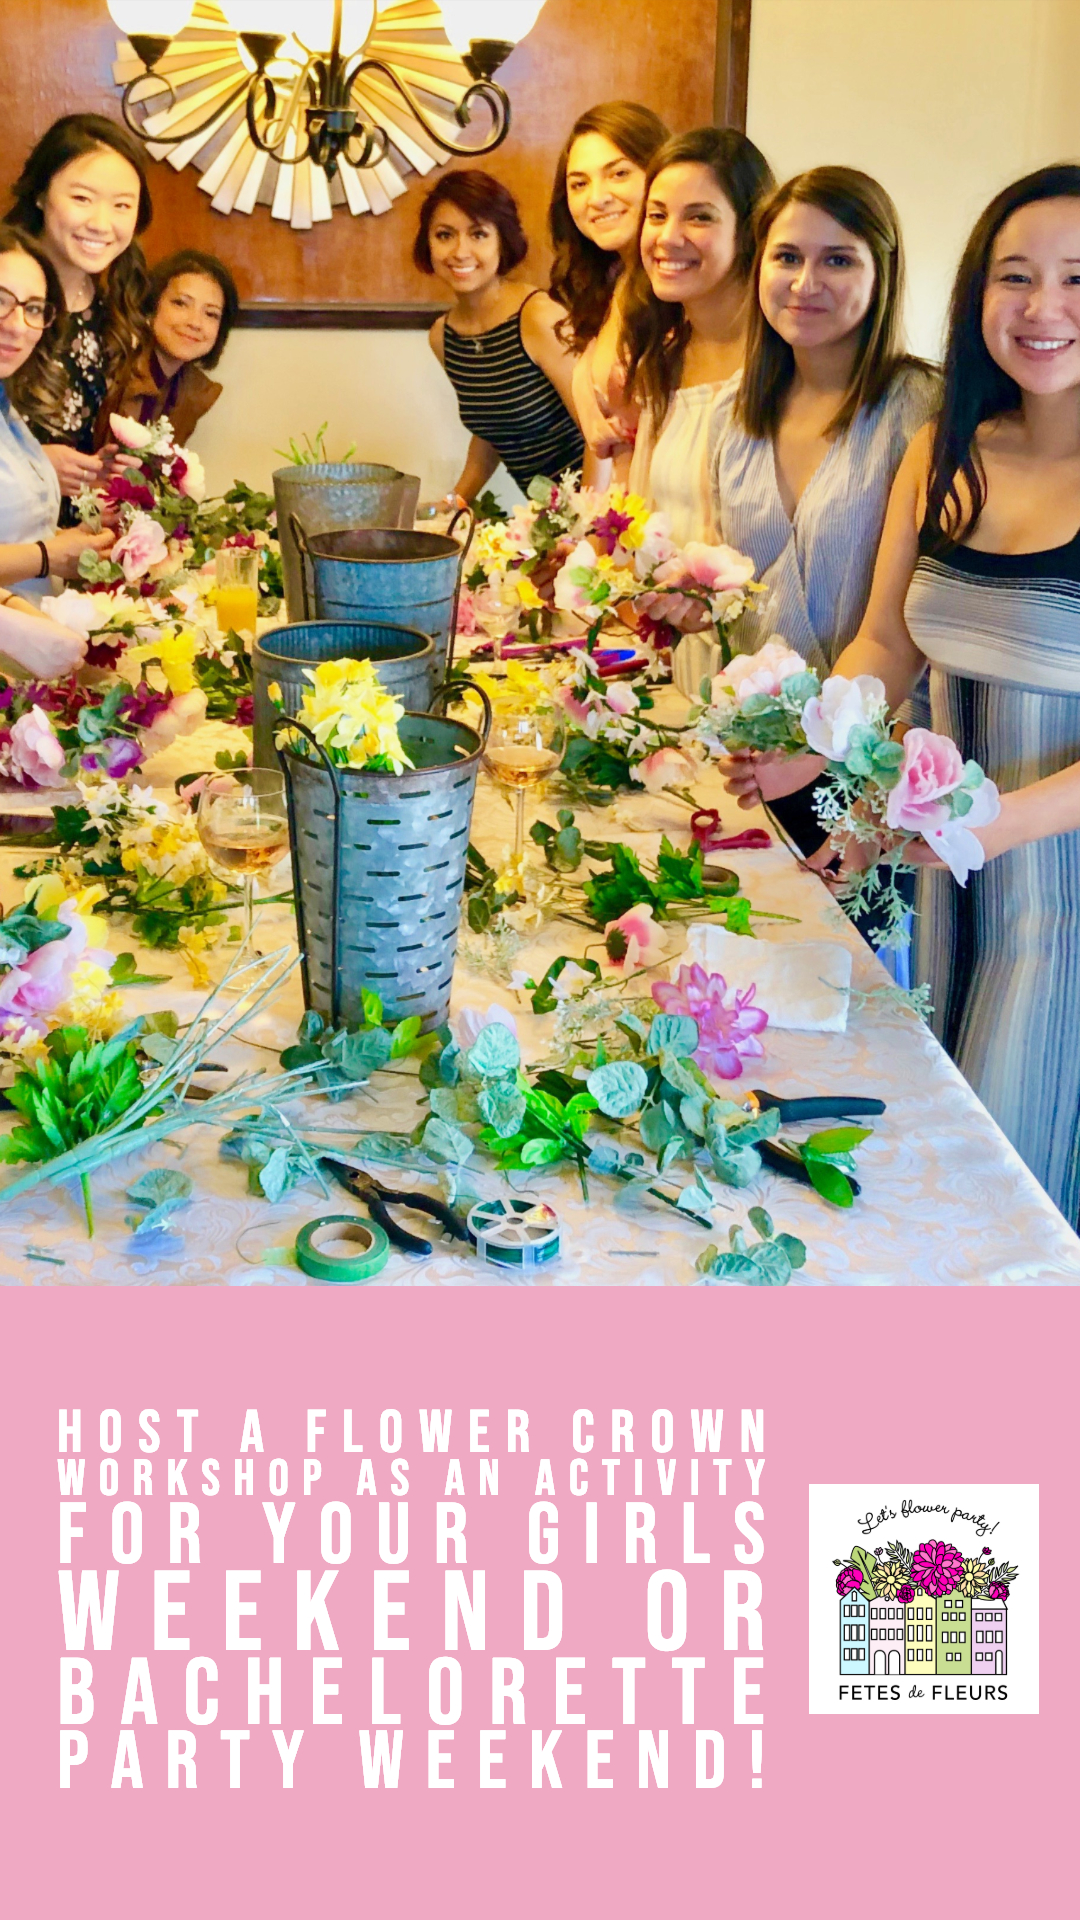 flower crown workshop as part of your bachelorette party weekend or girls weekend